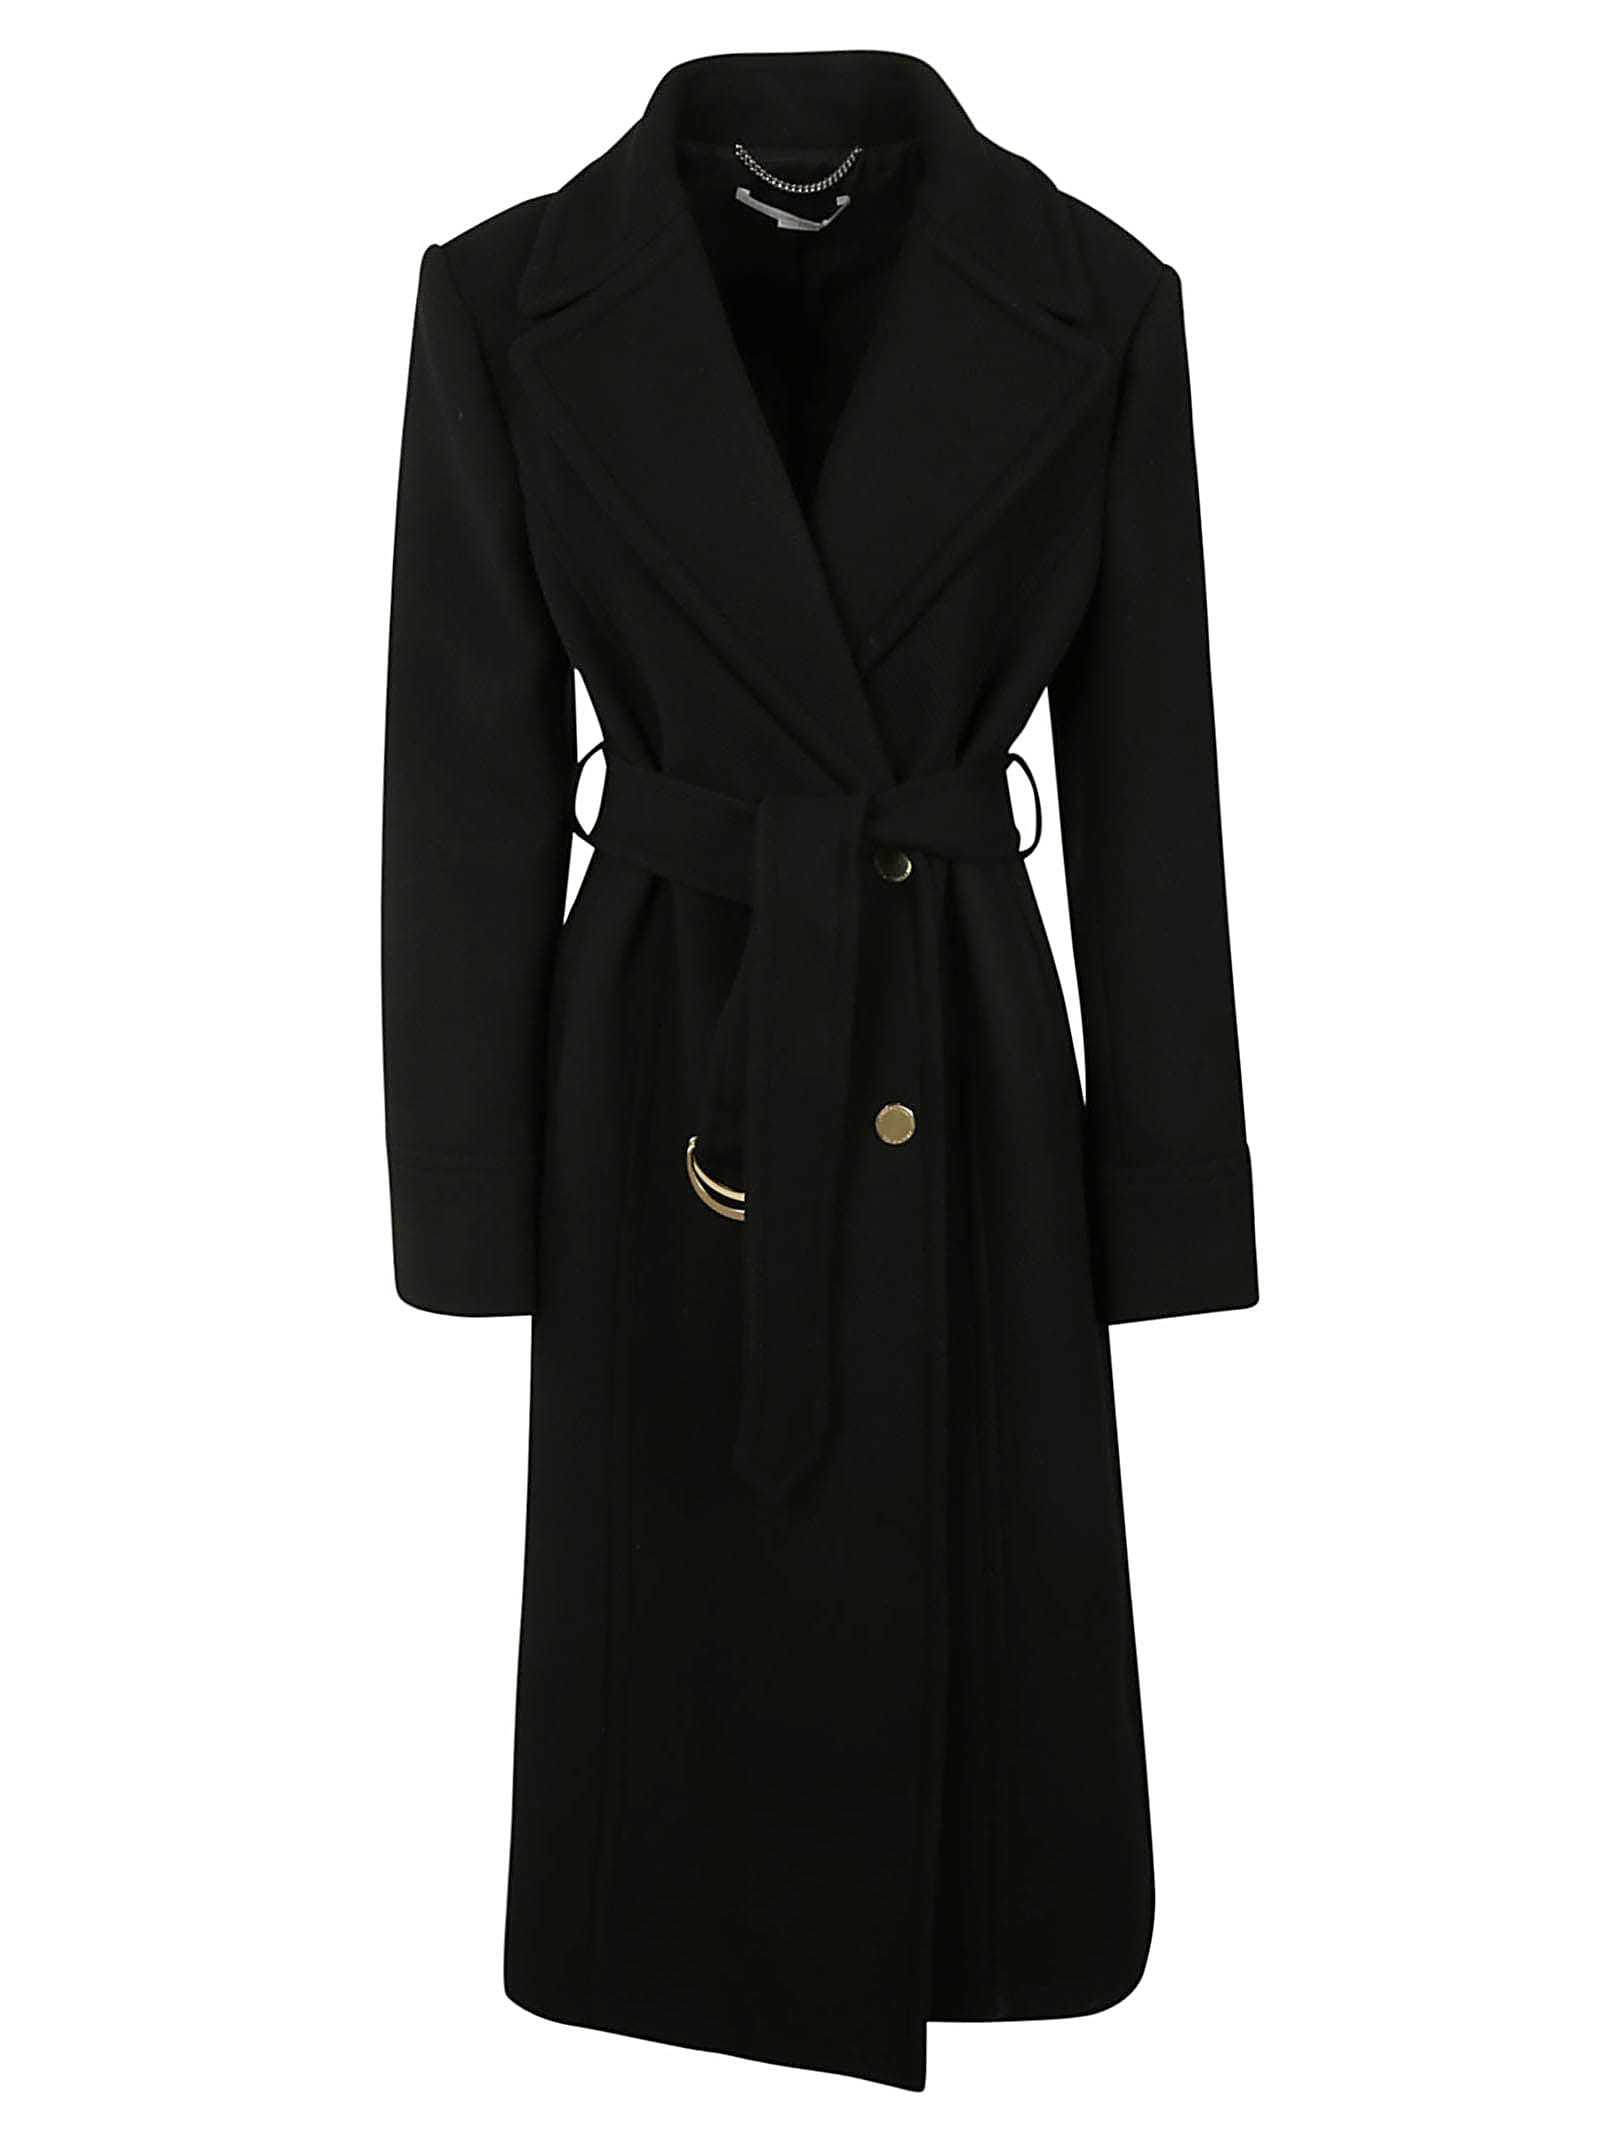 Stella McCartney Double-breasted Trench